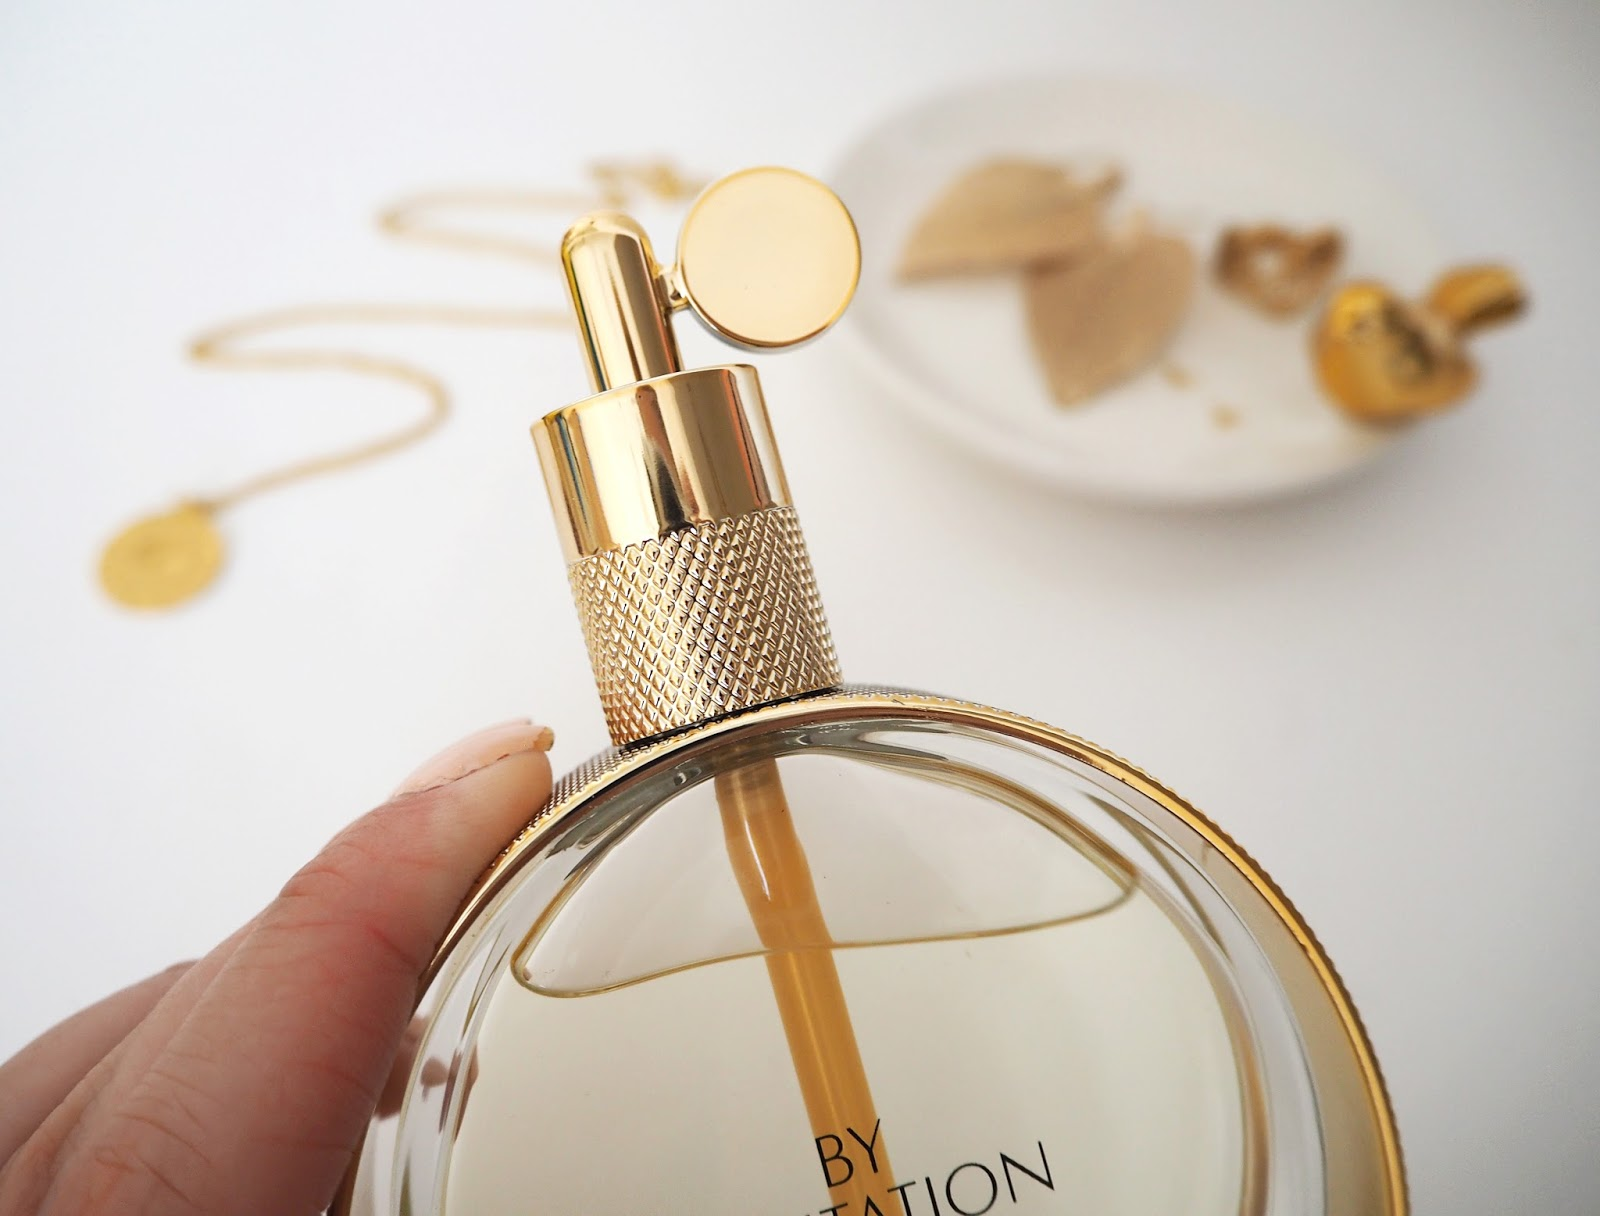 By Invitation by Michael Buble Perfume Review, Beauty Blogger, Katie Kirk Loves